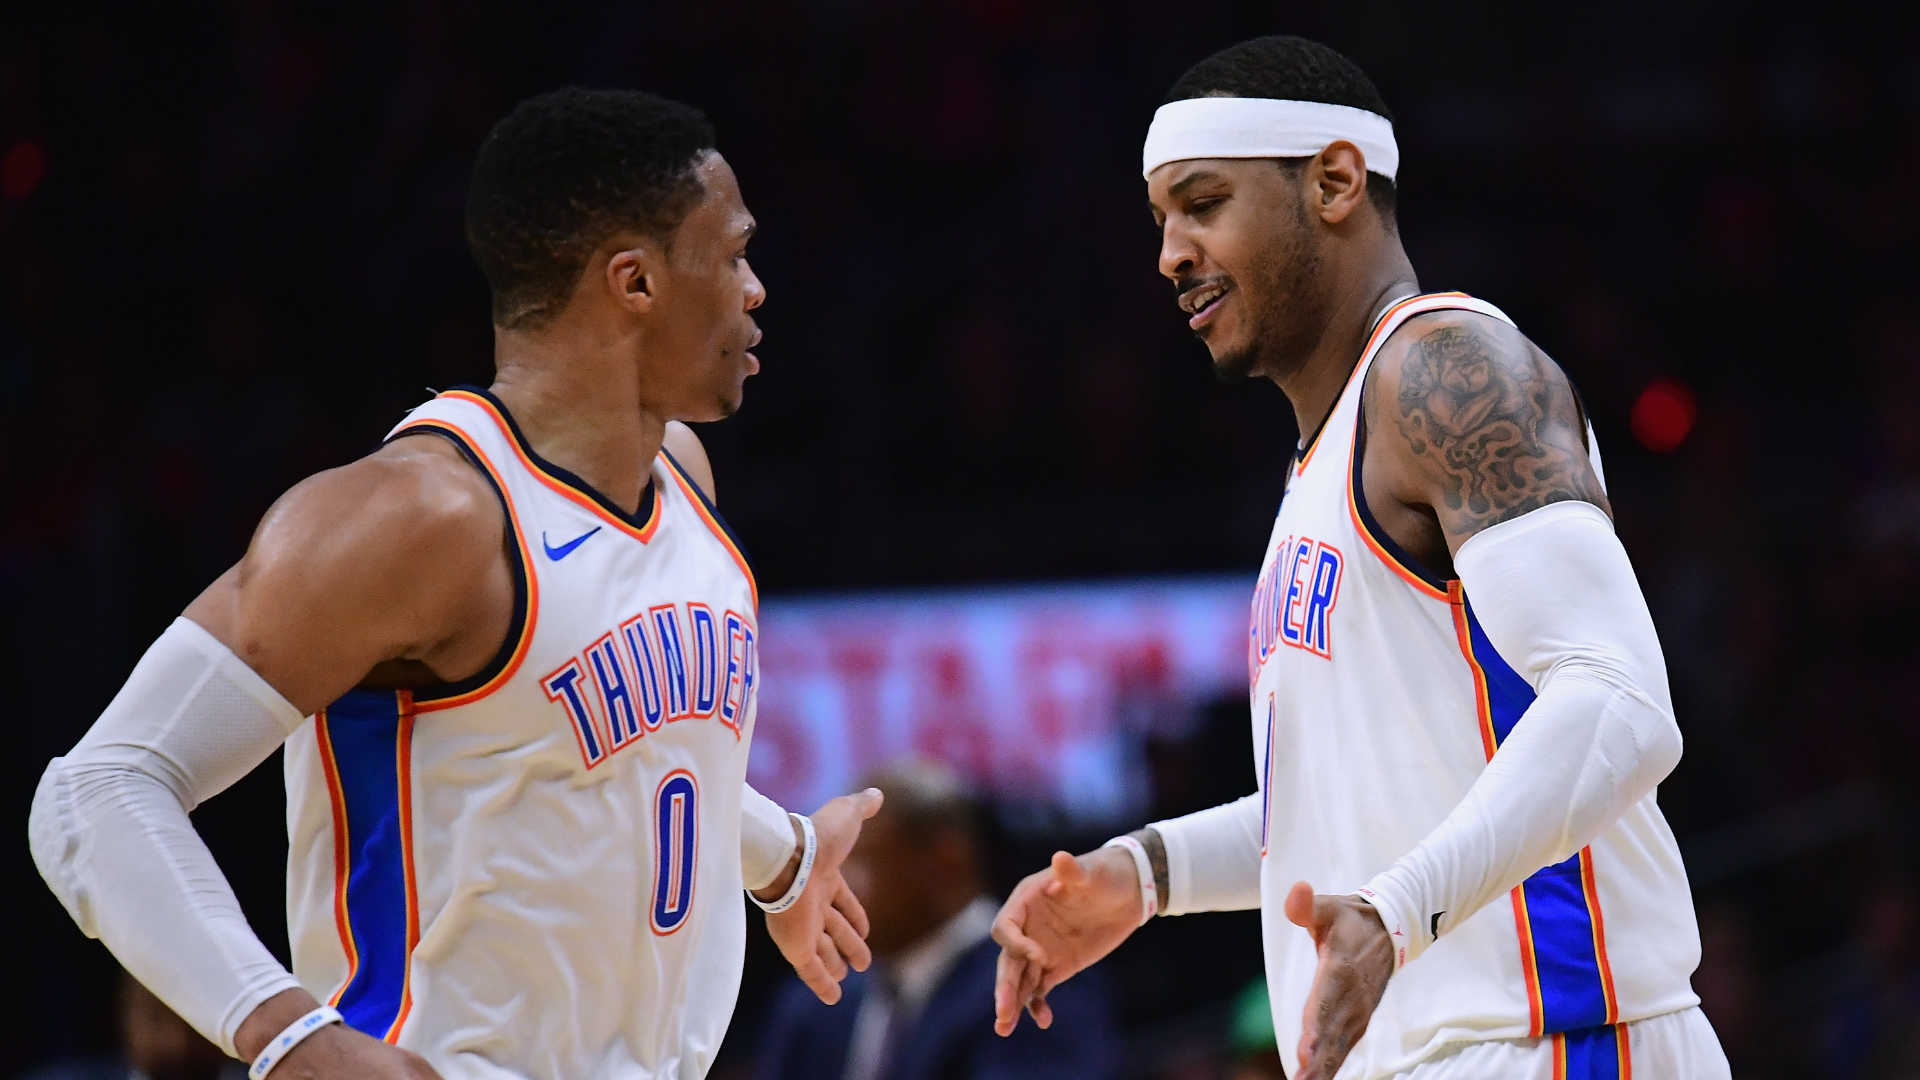 Russell Westbrook, Carmelo Anthony could play against Cavaliers